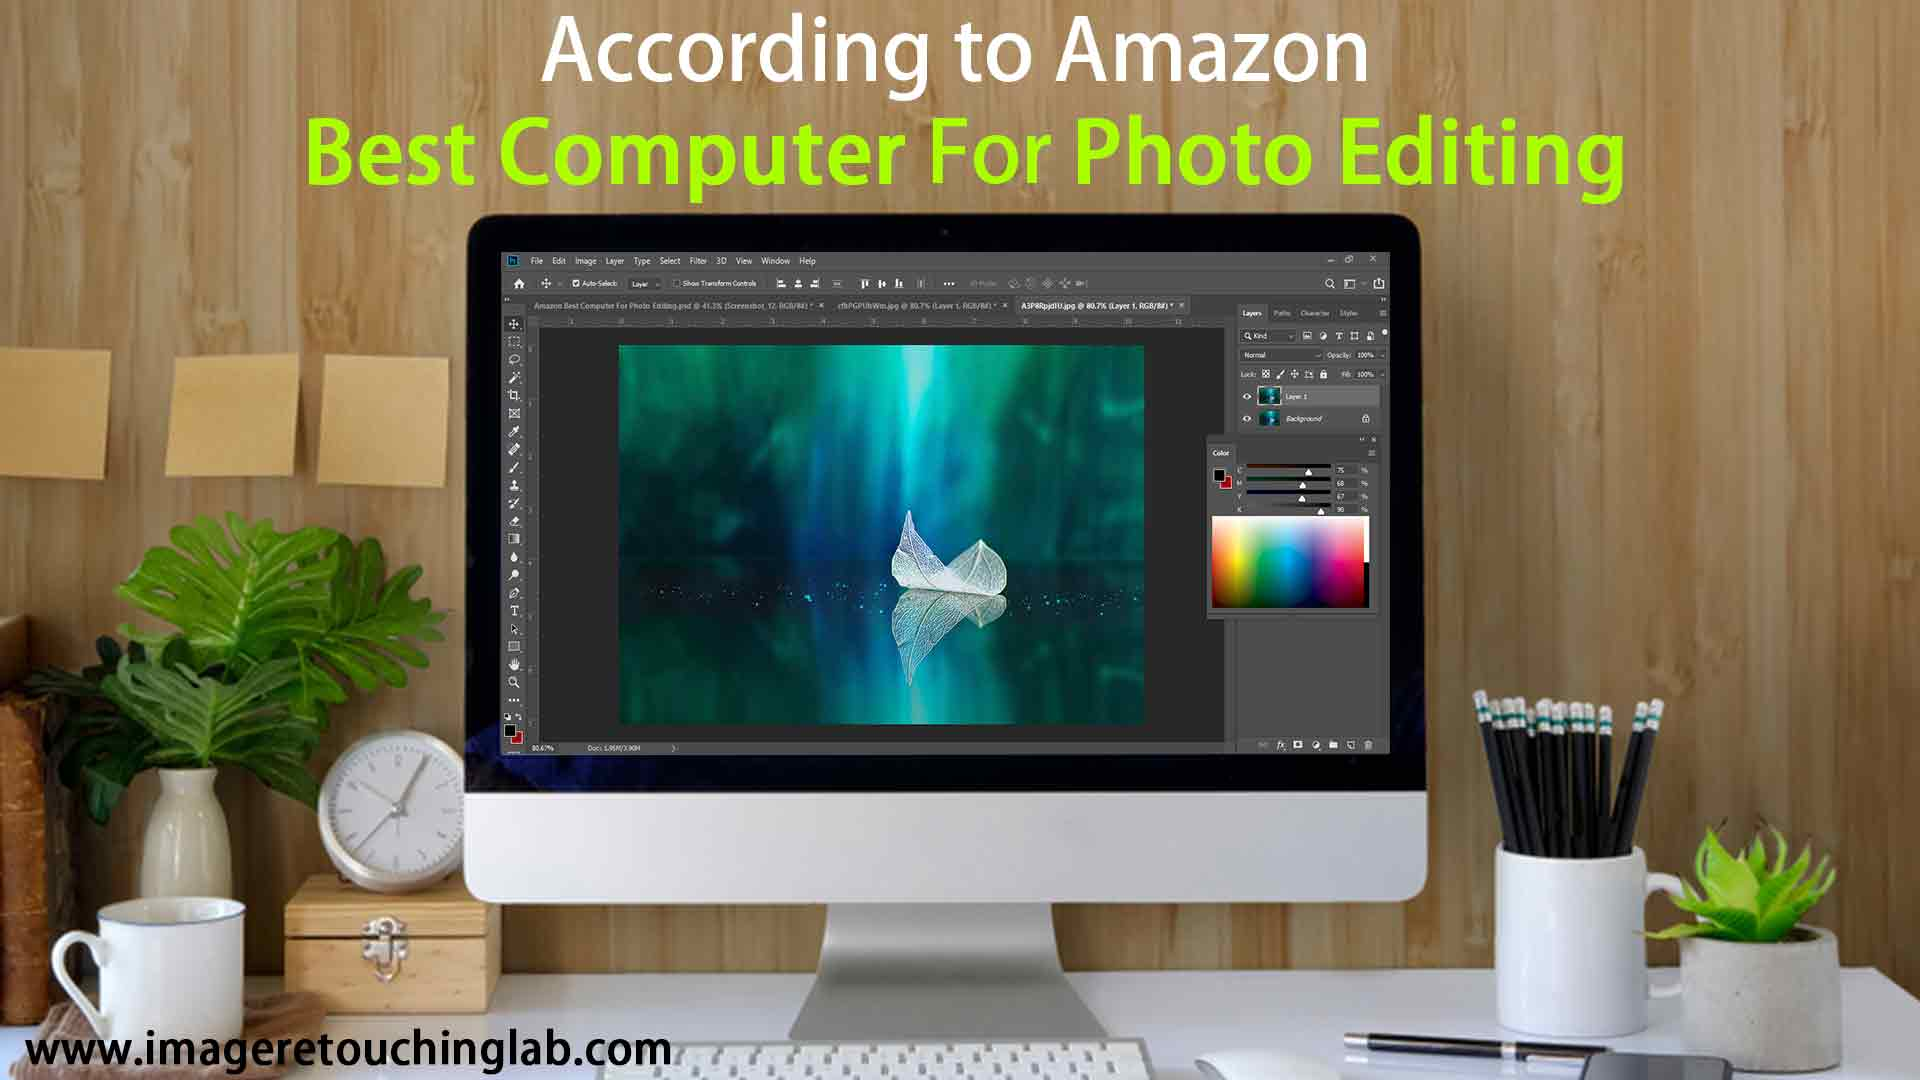 According To Amazon Best Computer For Photo Editing